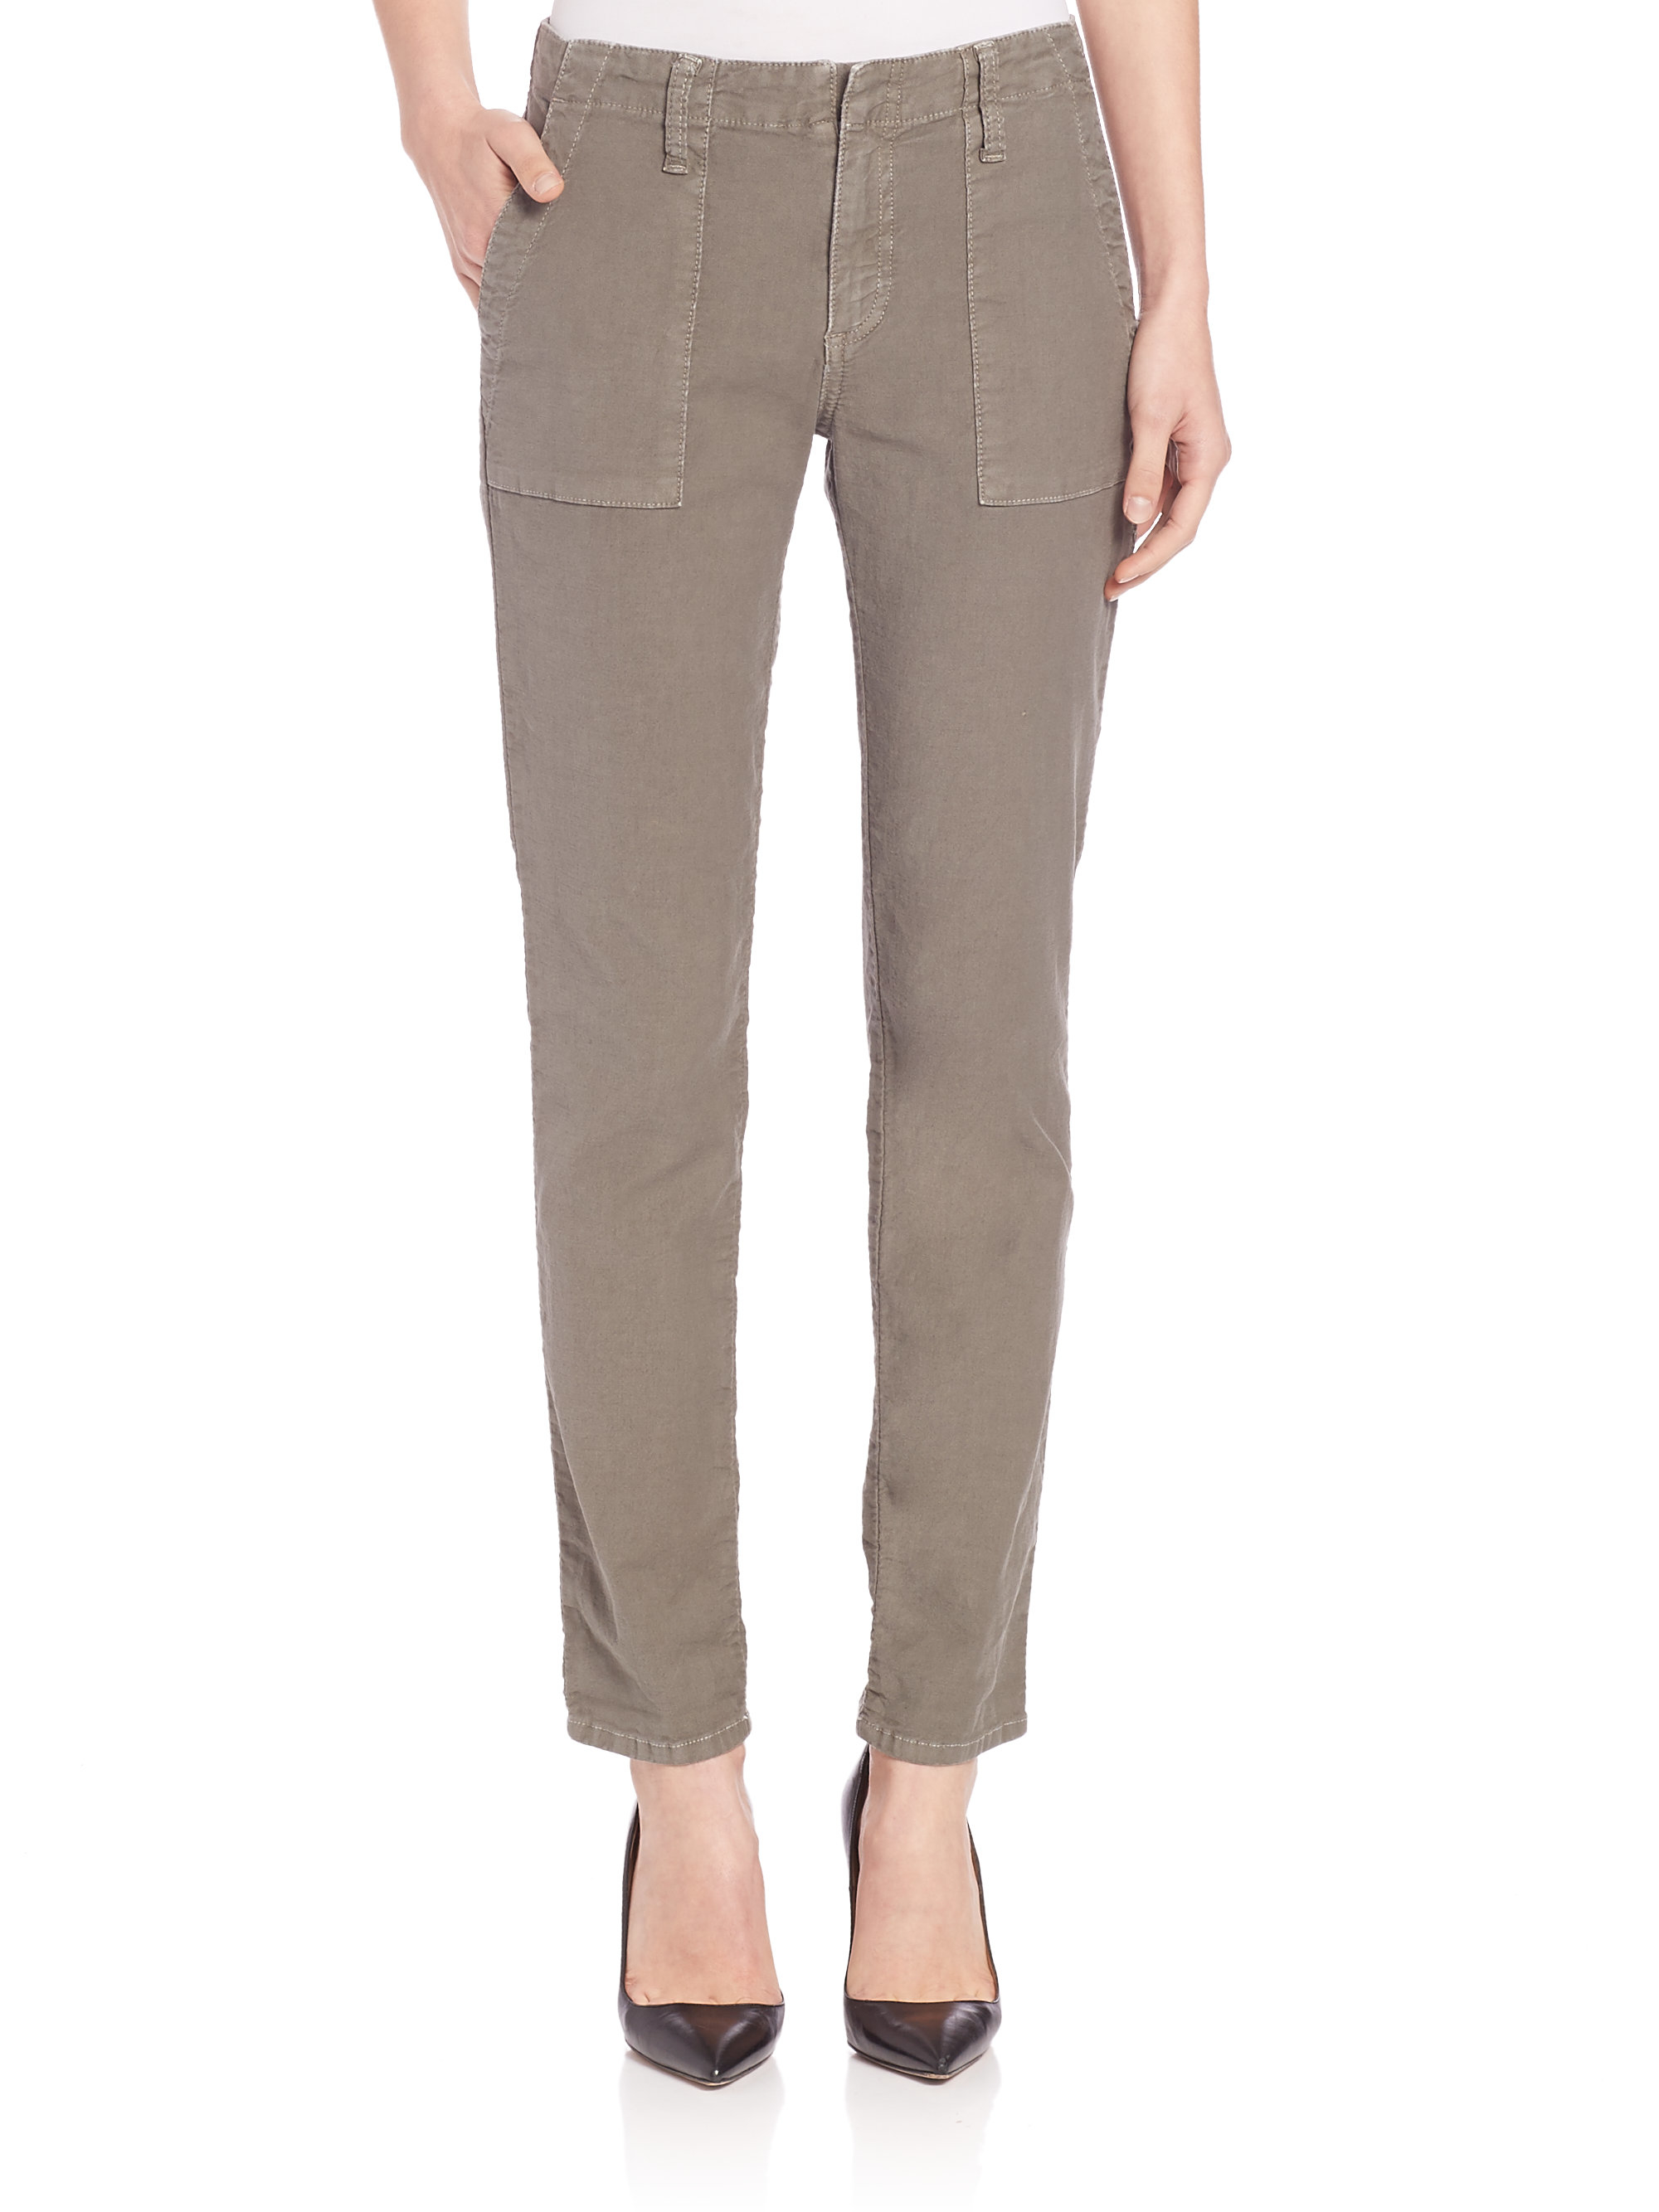 A - Hot Cotton Linen/Cotton Drawstring Crop Pants 5 8 8 love these! Runs true to size, ordered a medium and they fit great! Have them in green, and will buy in the other solid colors. I live in the desert, and these are going to get me through a lot of + days/5(8).